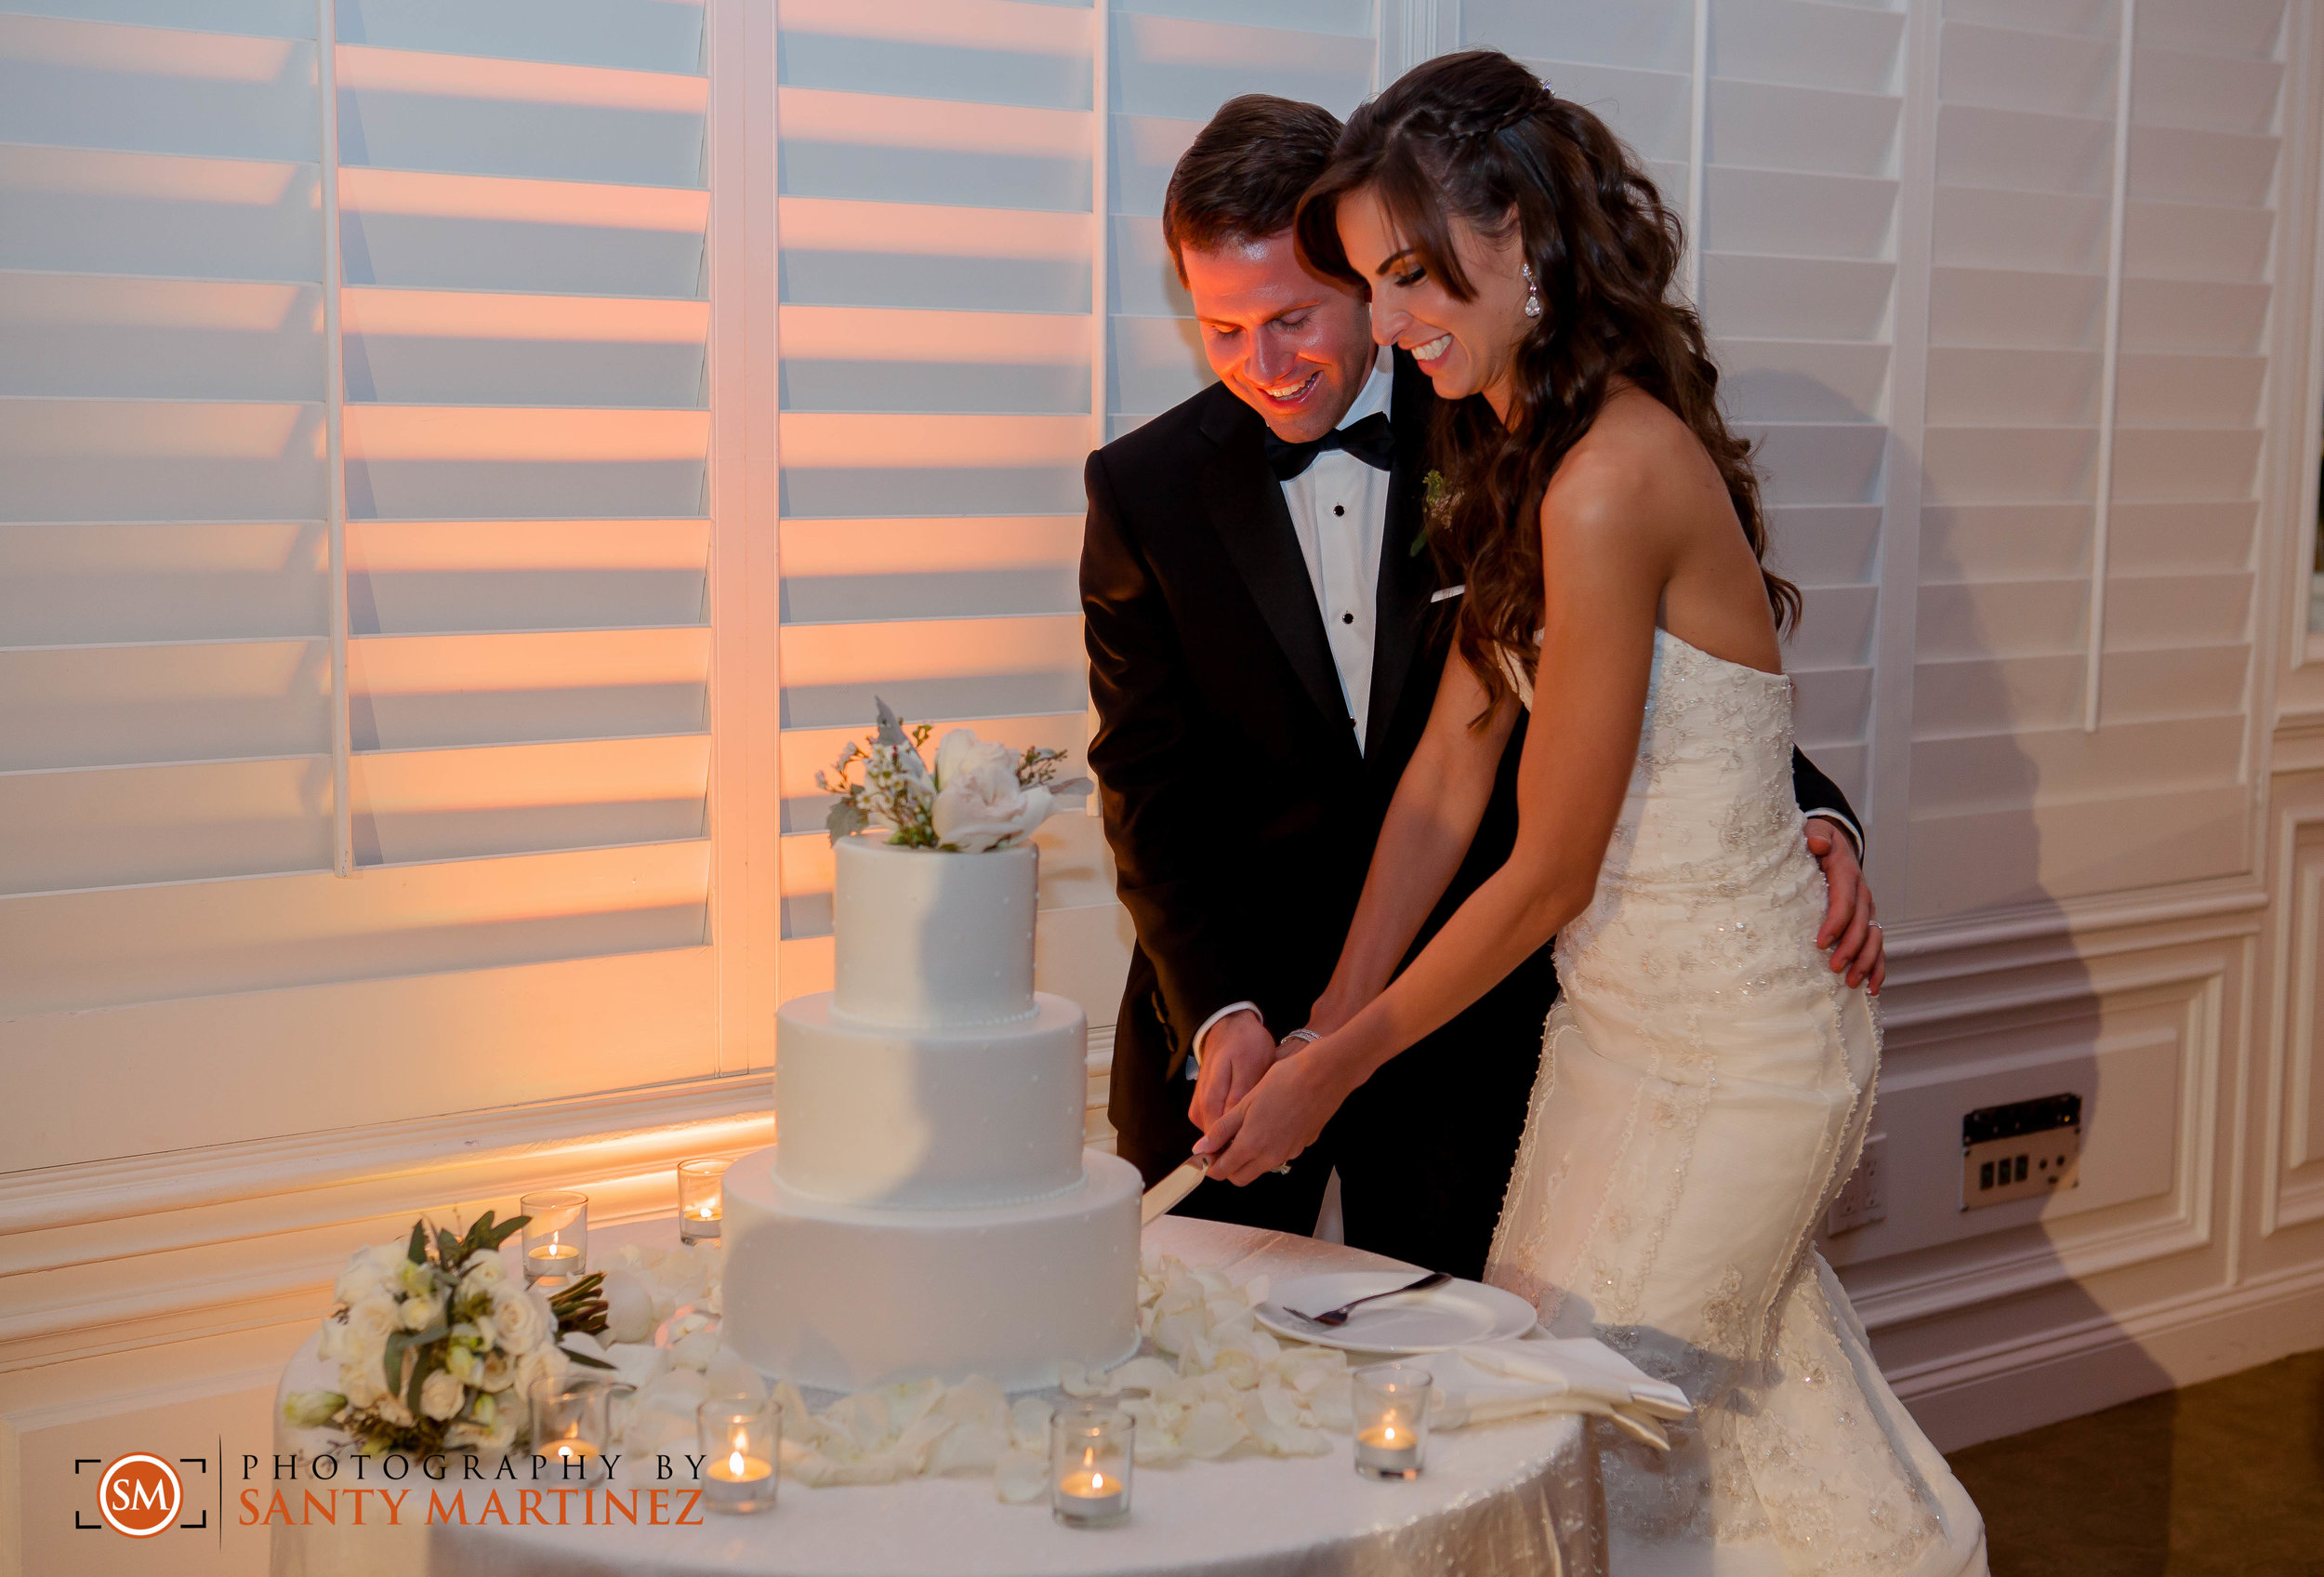 Miami Wedding Photographer - Santy Martinez -38.jpg